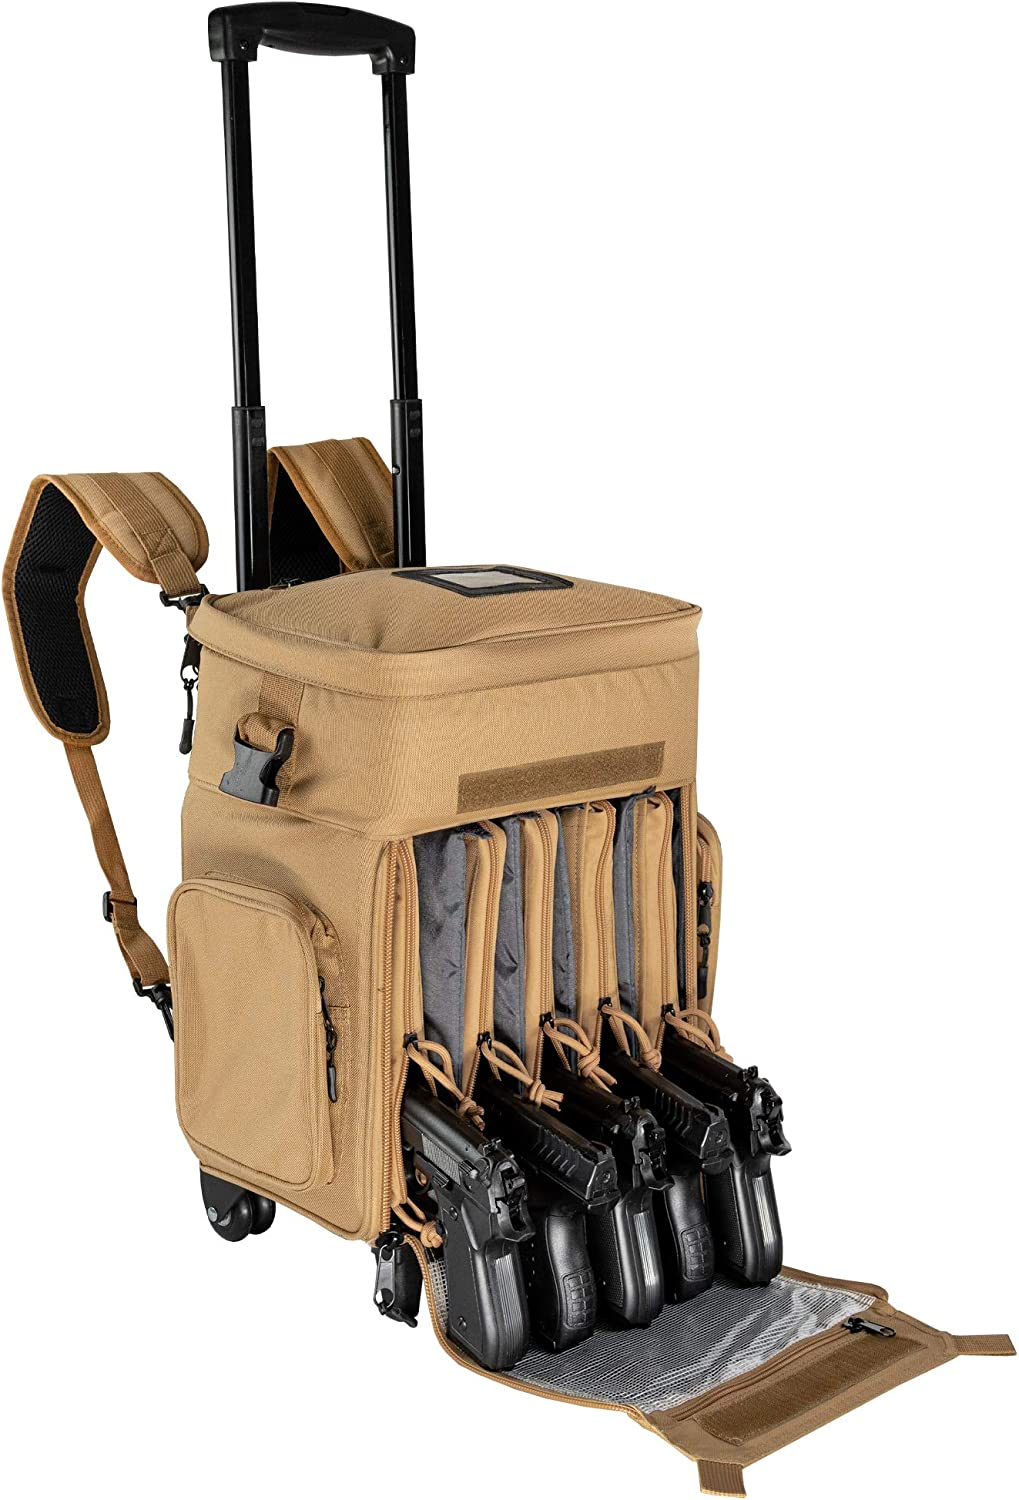 """Calissa Offshore Tackle Backpack -""""Apollo 2"""" Tactical Rolling Pistol Case Gun Range Bag for Shooting Gear, Ammo, Hunting Supplies, Firearms Storage, Fishing Equipment – 5 Pouch Compartment Organizer"""